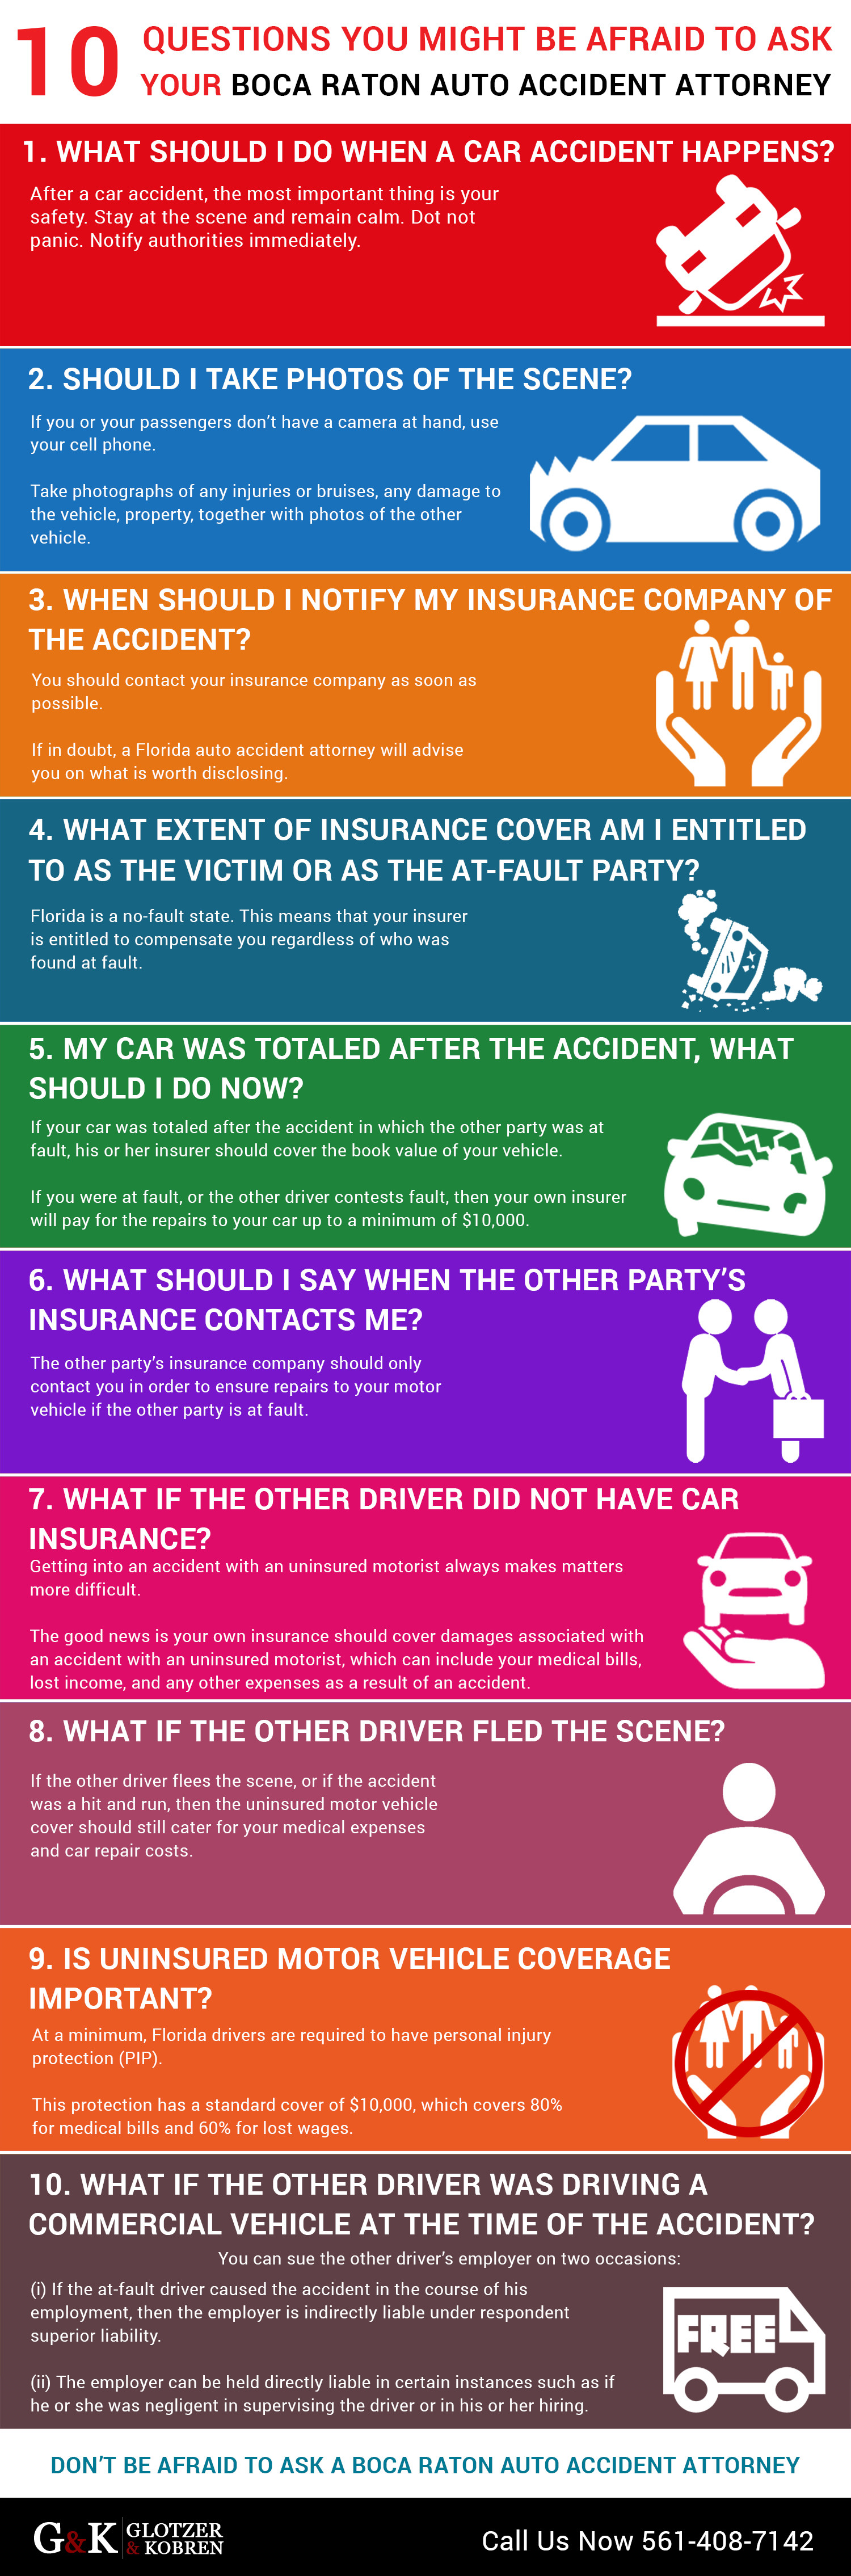 10 Questions You Might Be Afraid to Ask Your Boca Raton Auto Accident Attorney Infographic